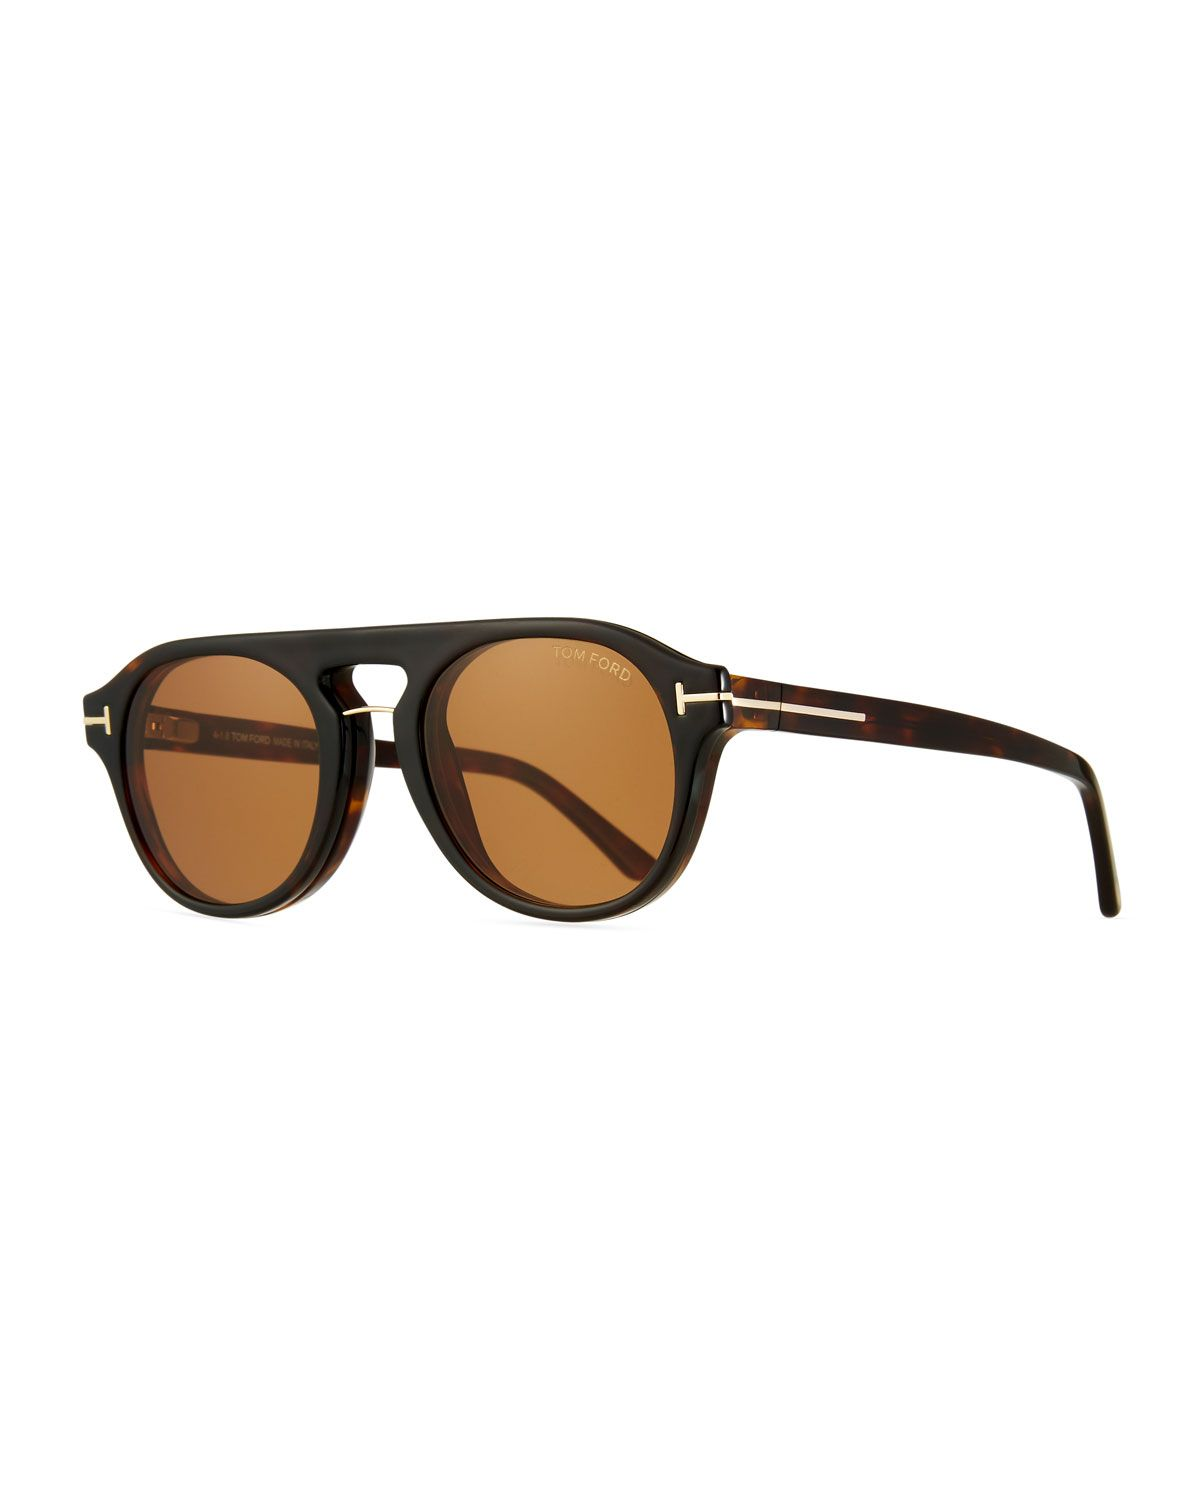 a64079b2d086f Tom Ford Men s Round Optical Glasses w  Magnetic Clip On Blue-Block Shade